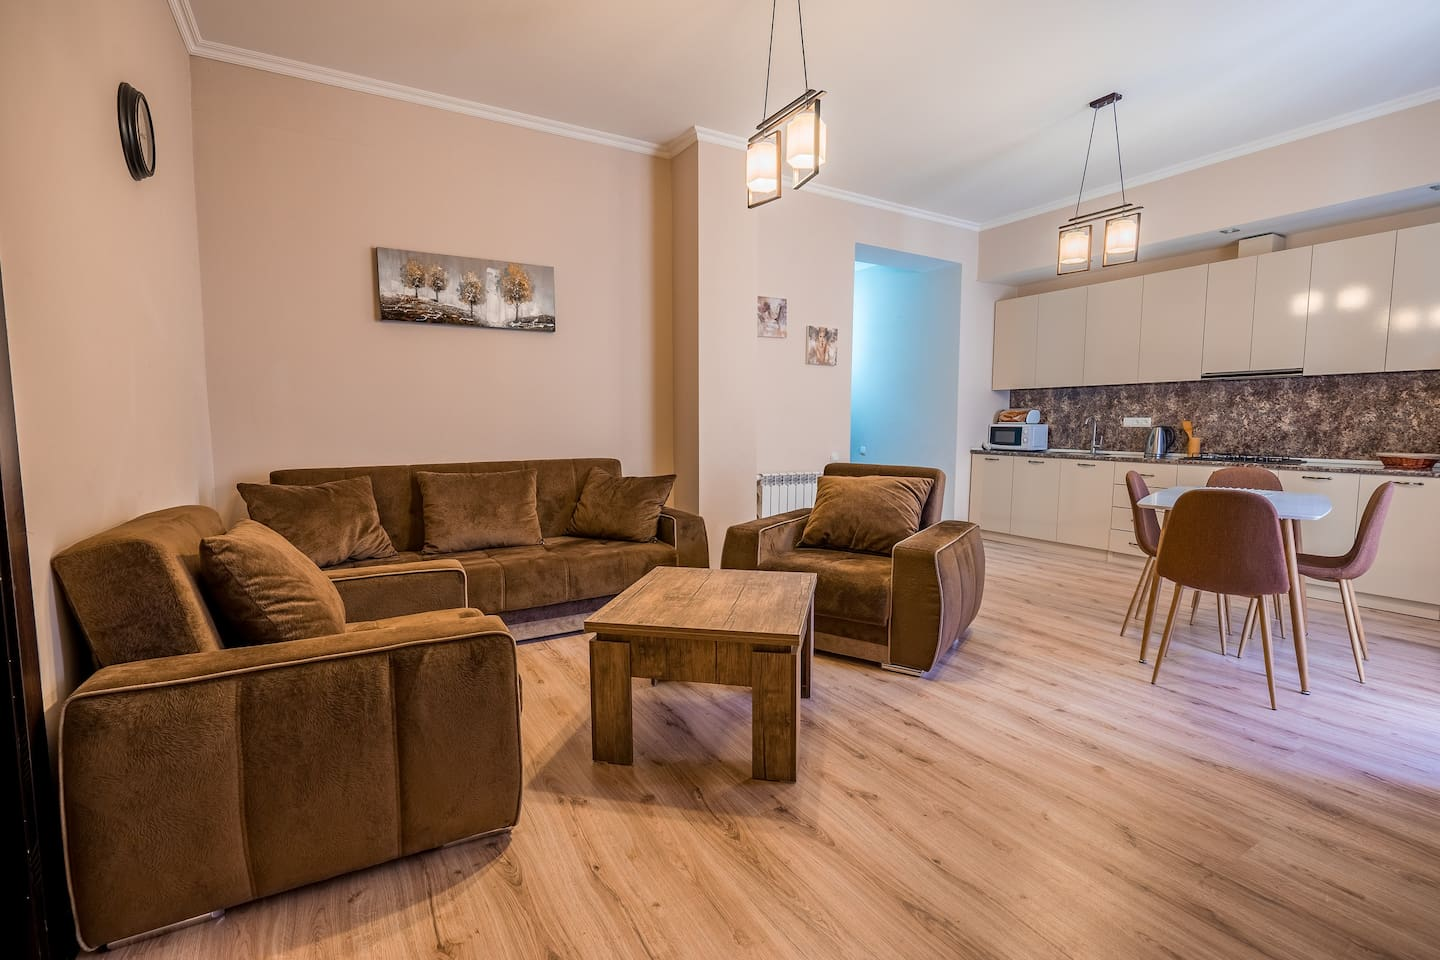 Lounge to relax at best with comfortable sofas and large screen tv, coffee table and wardrobe if needed.